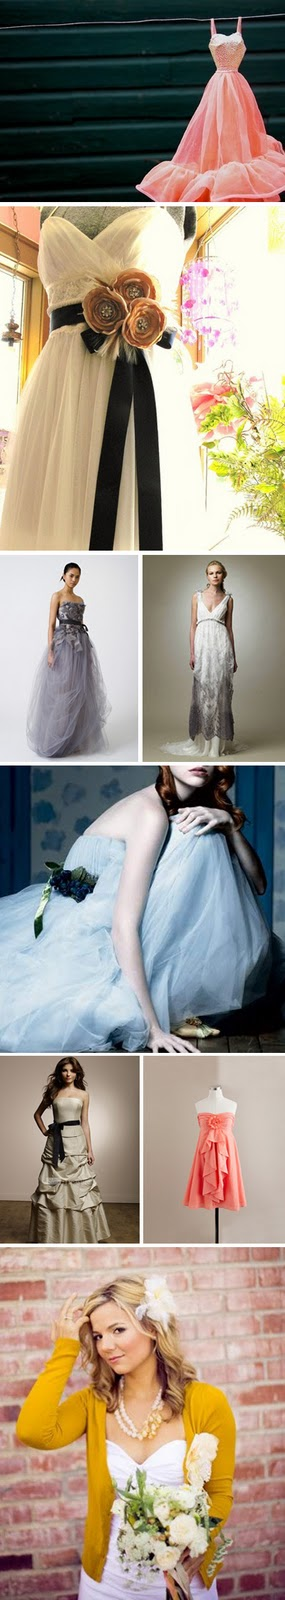 colored wedding dress collage